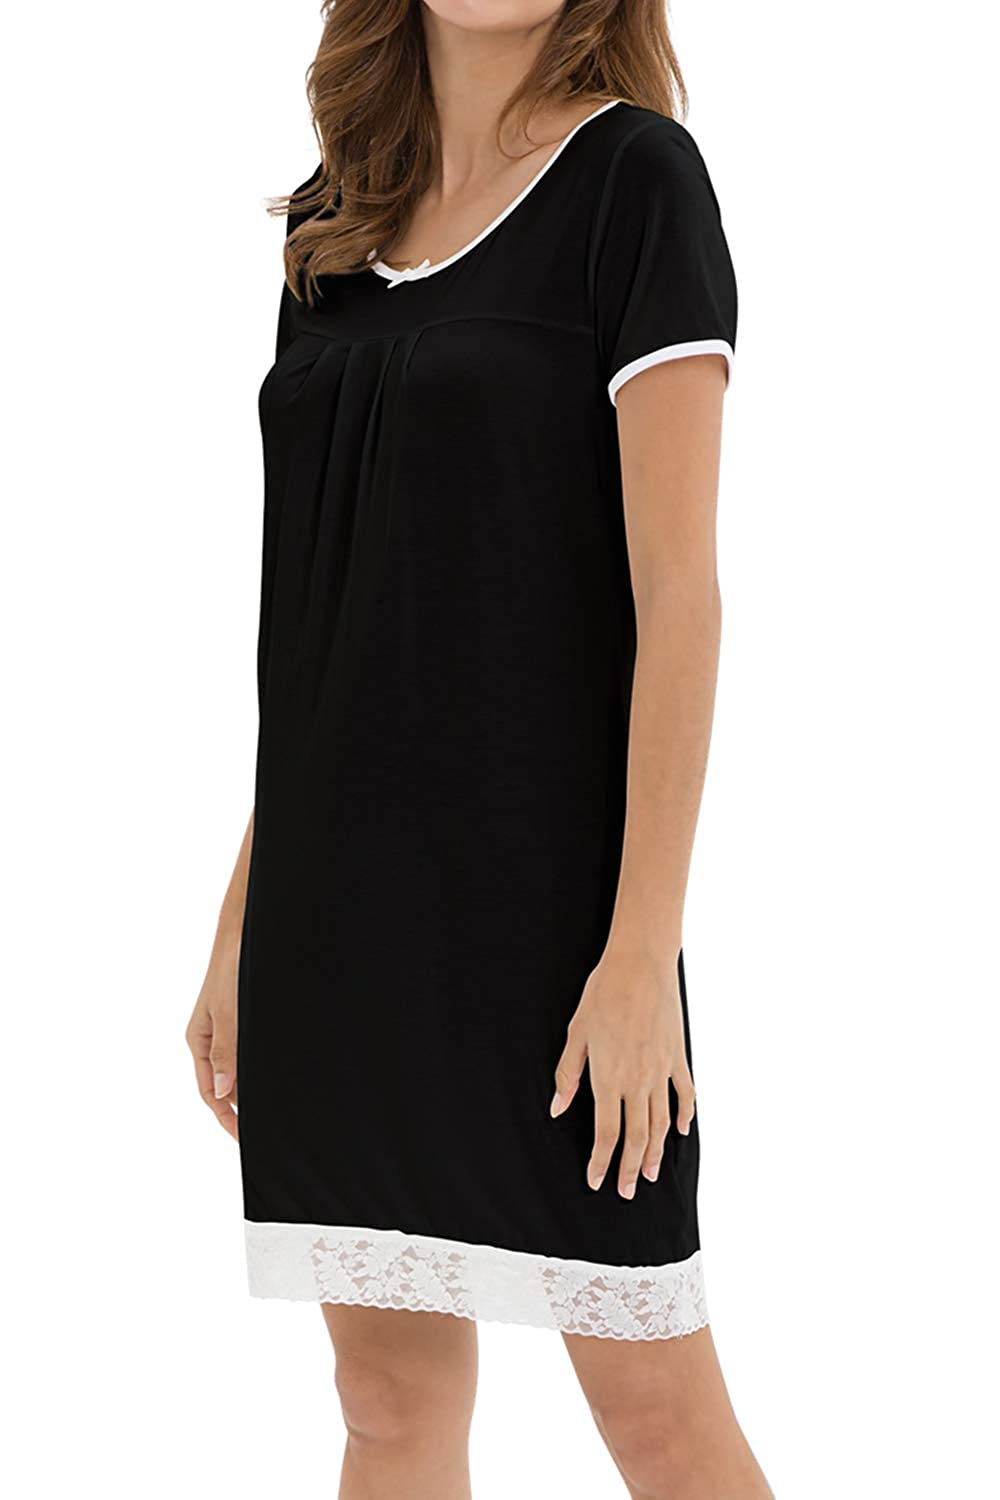 Black WiWi Bamboo Lace Nightgowns Short Sleeve Nightshirts for Women